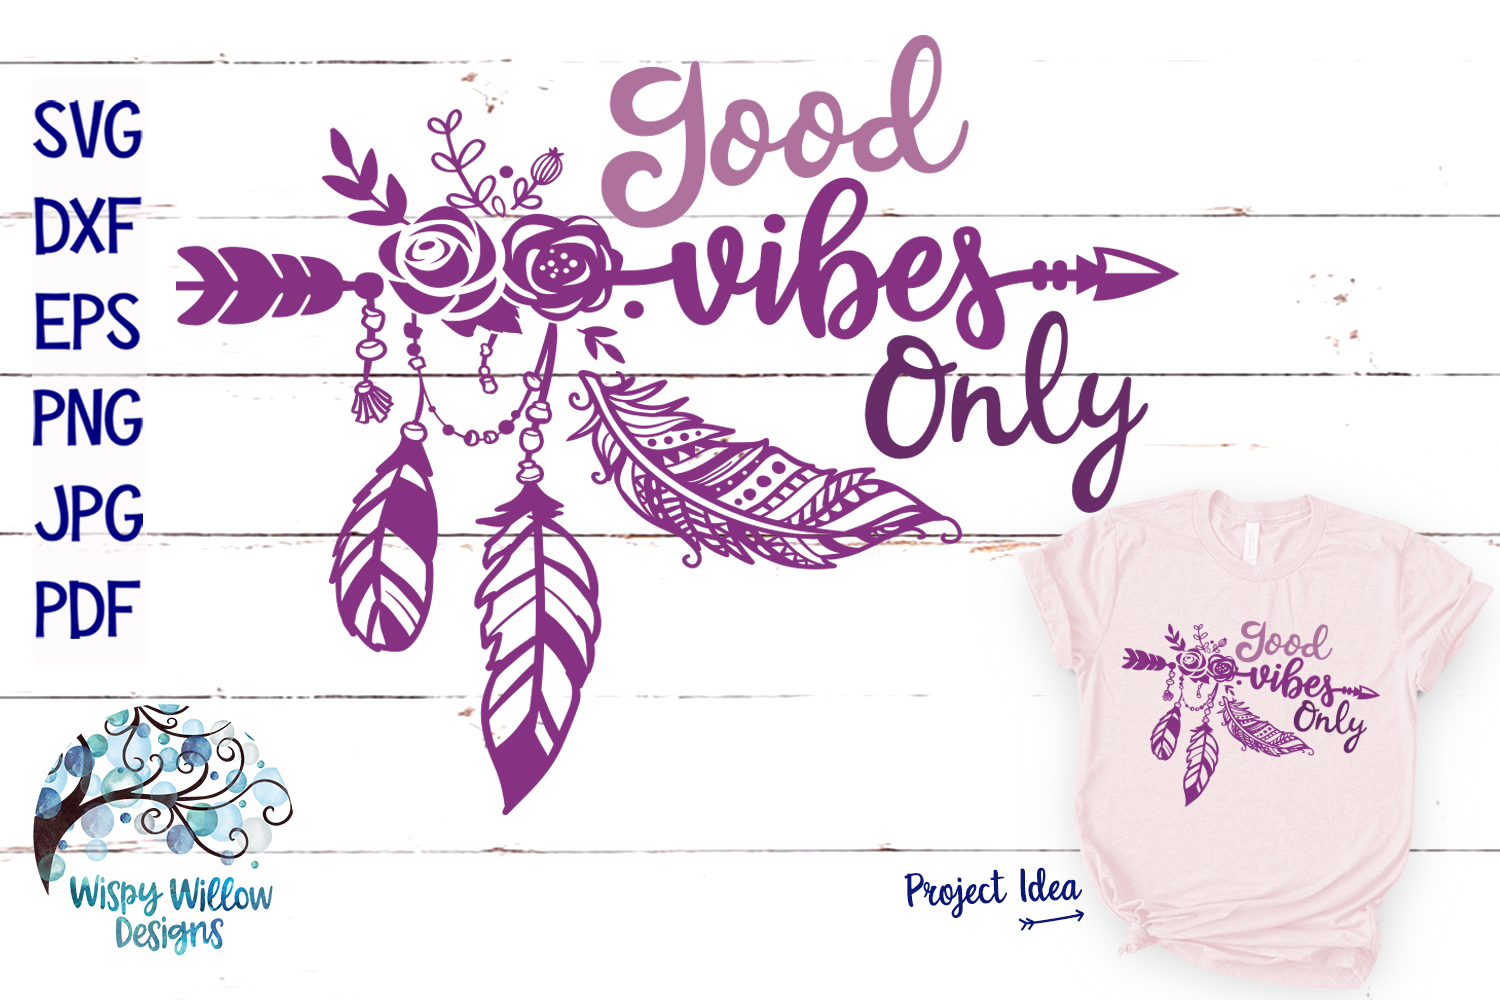 Good Vibes Only SVG   Boho Feather  Hippie SVG Cut File example image 1